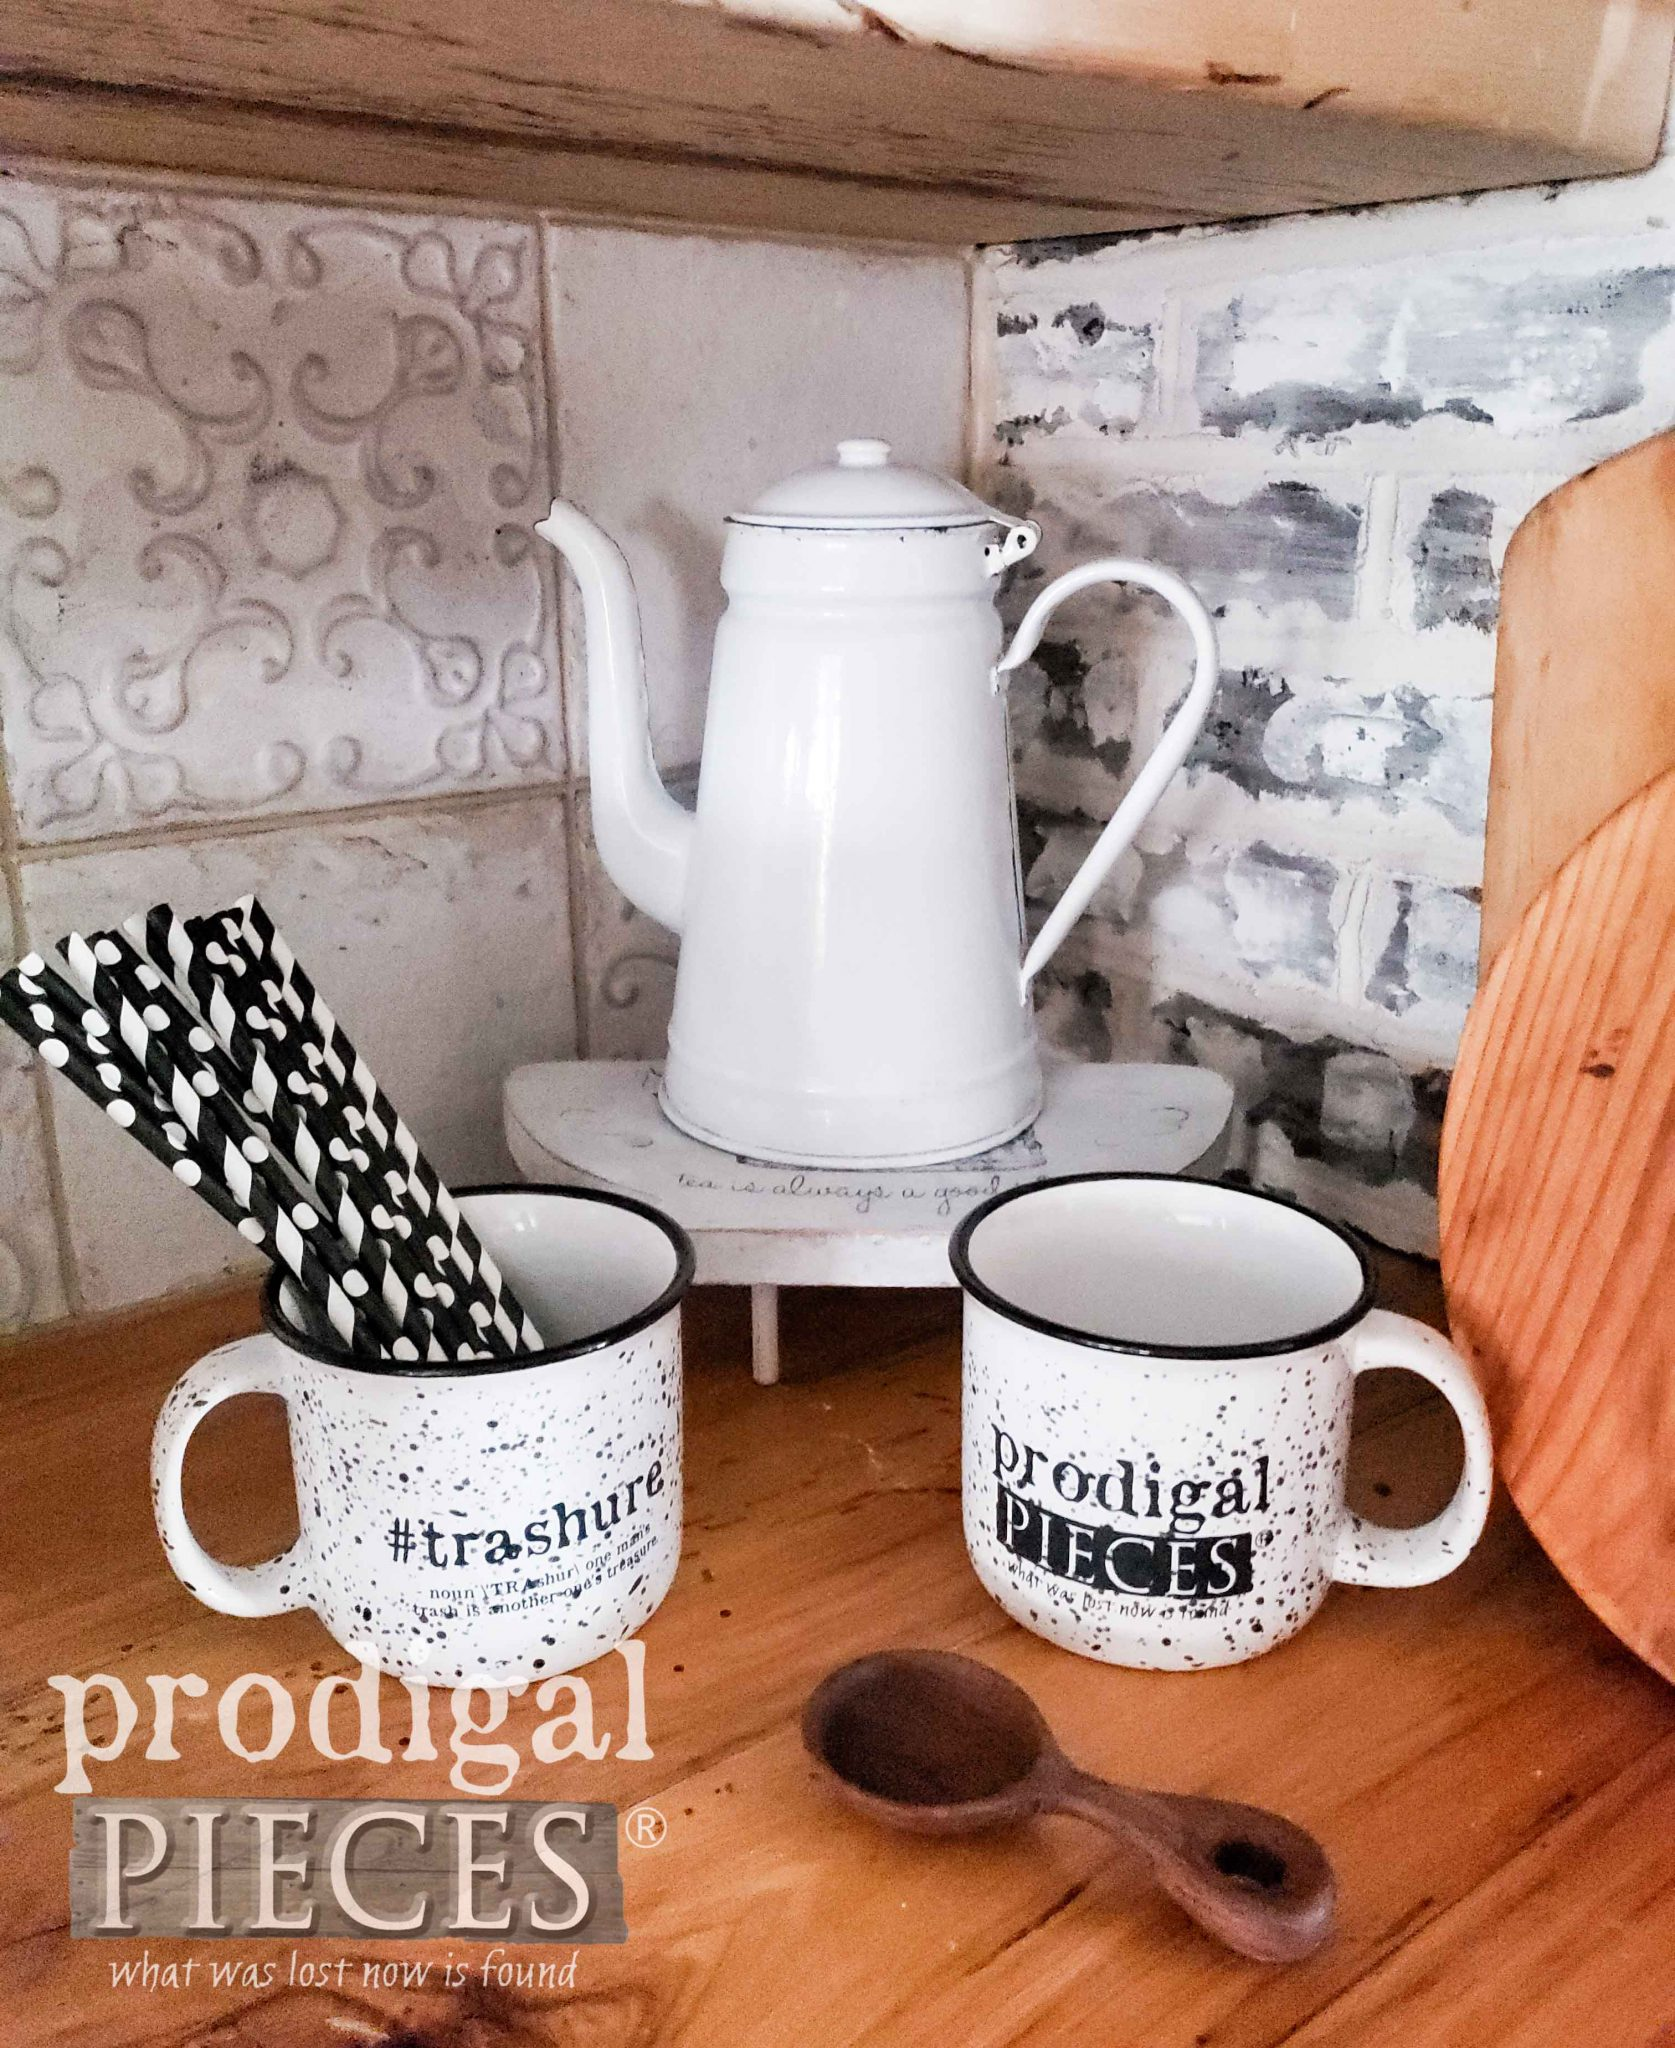 Simple Farmhouse Kitchen Decor by Larissa of Prodigal Pieces | prodigalpieces.com #prodigalpieces #farmhouse #home #diy #homedecor #handmade